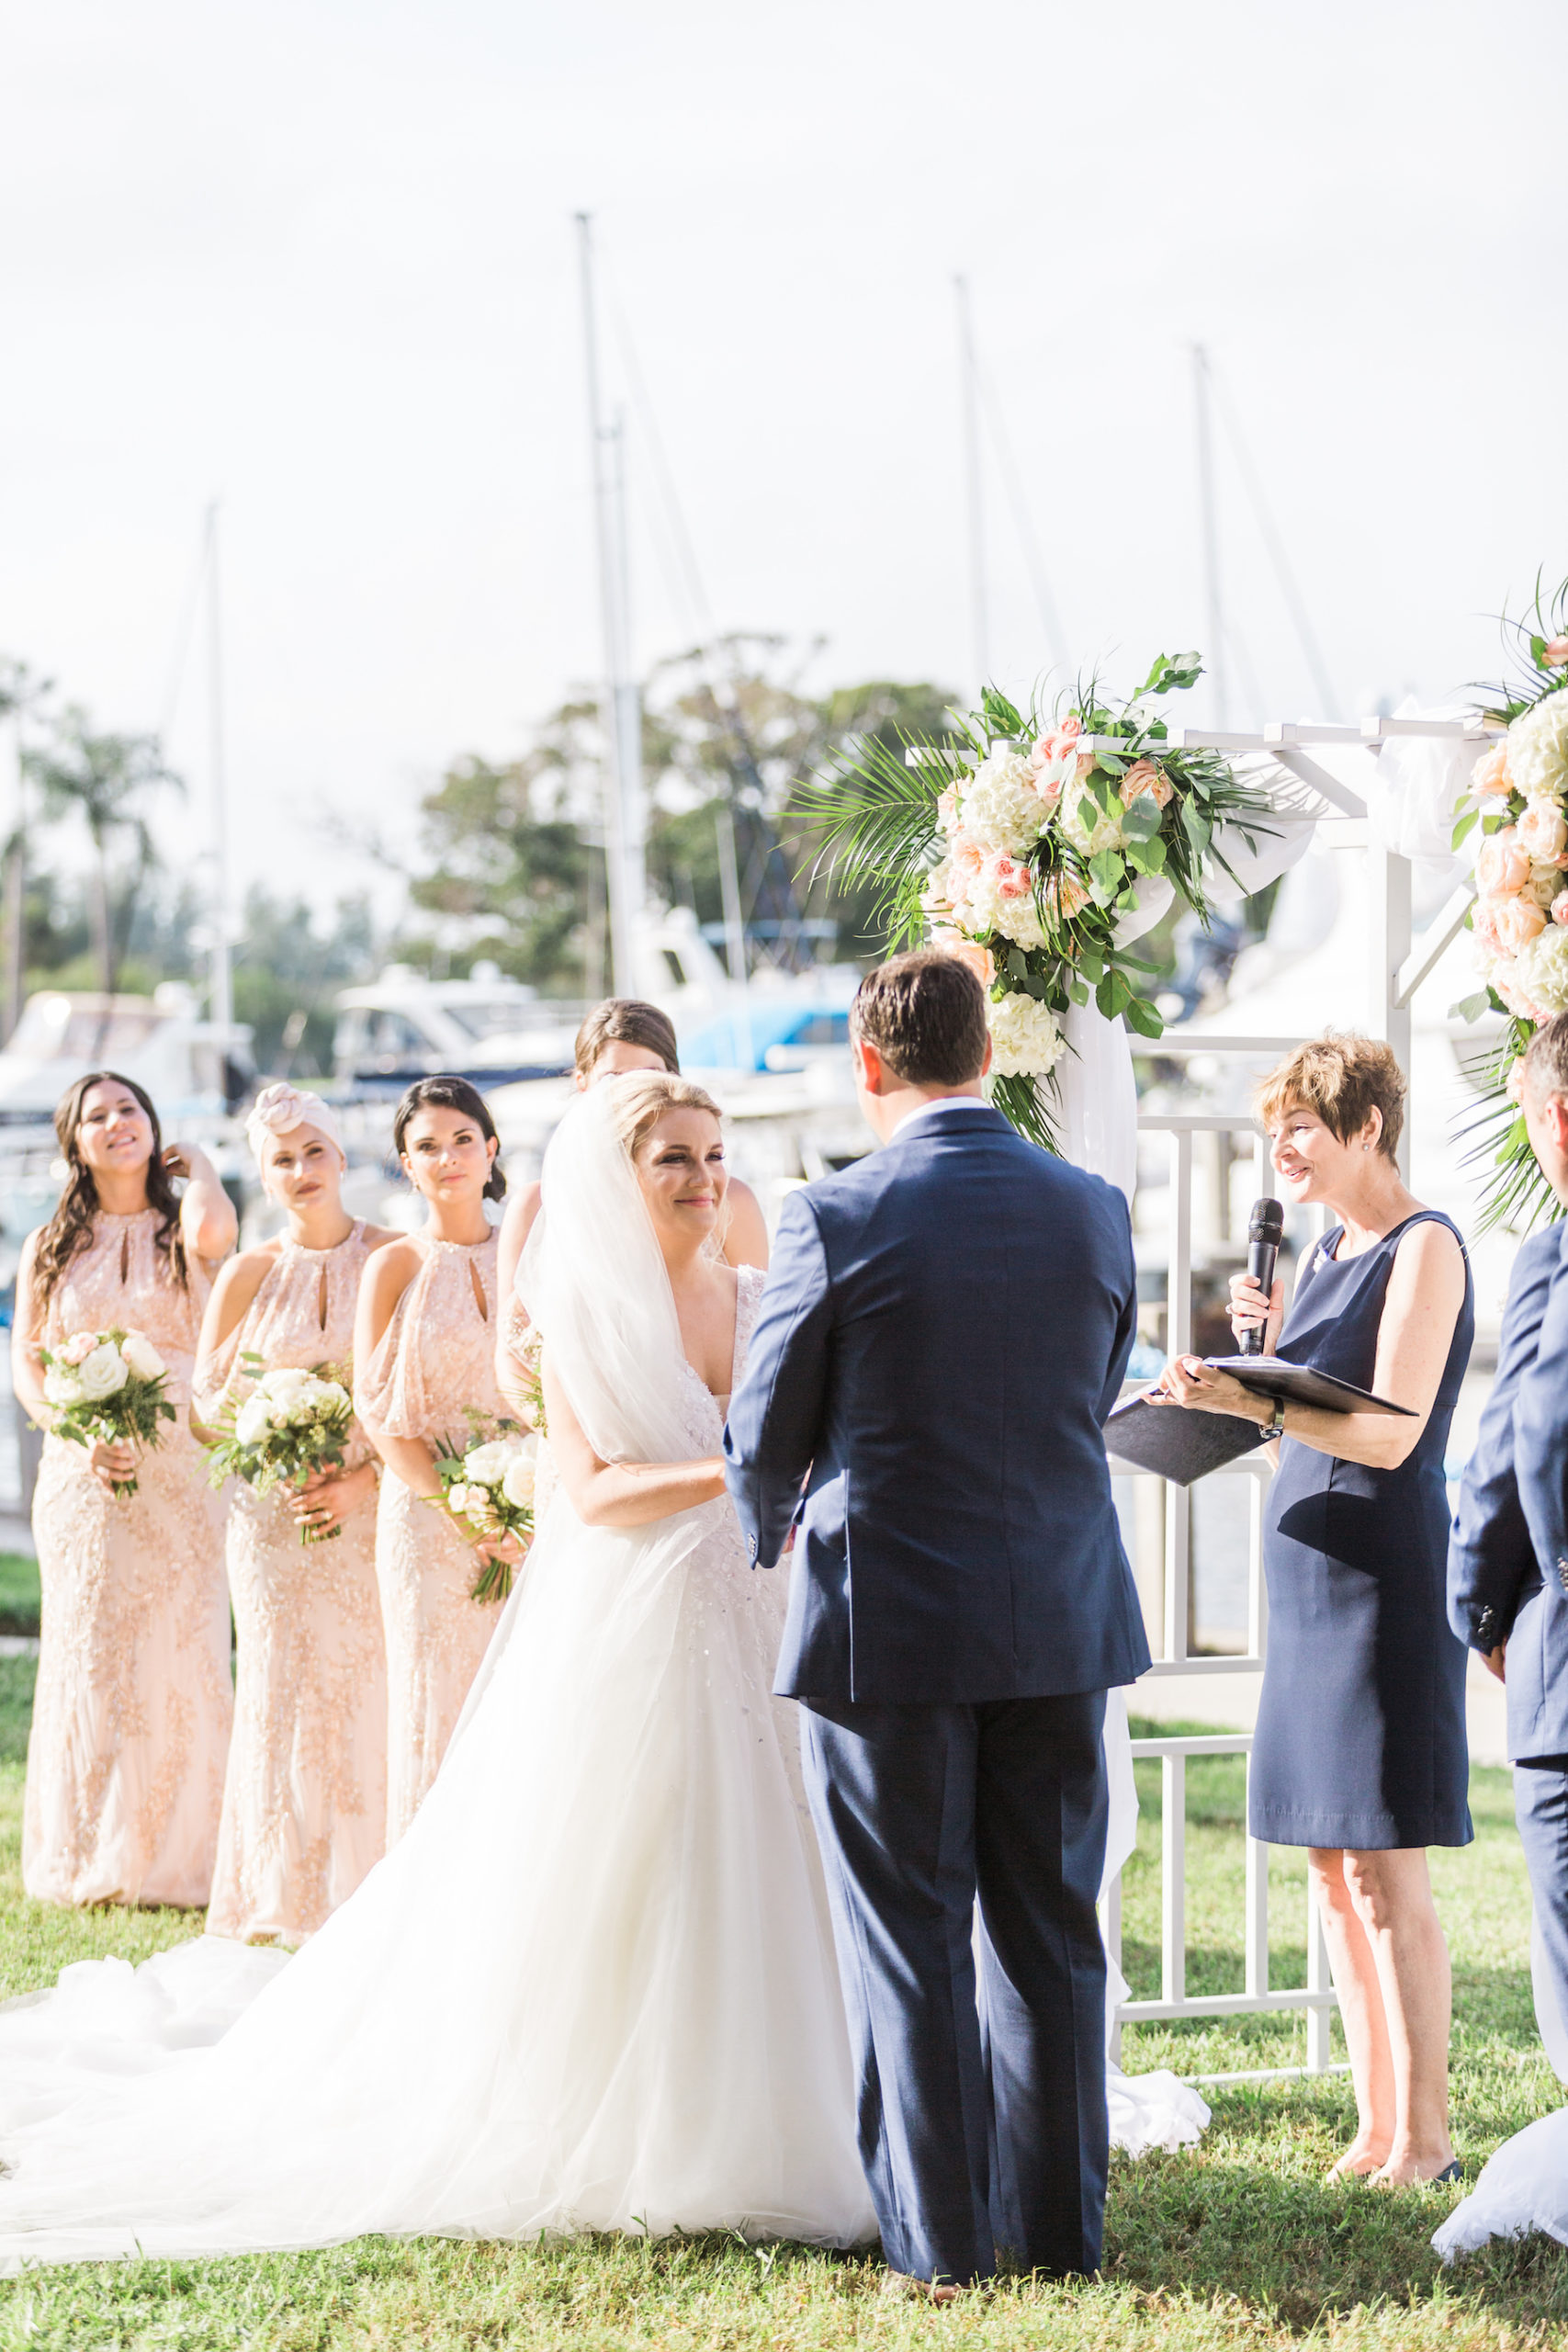 Peach, Pink, and White Tropical Wedding Ceremony Arch Decor with Greenery | Sarasota Wedding Officiant A Wedding with Grace